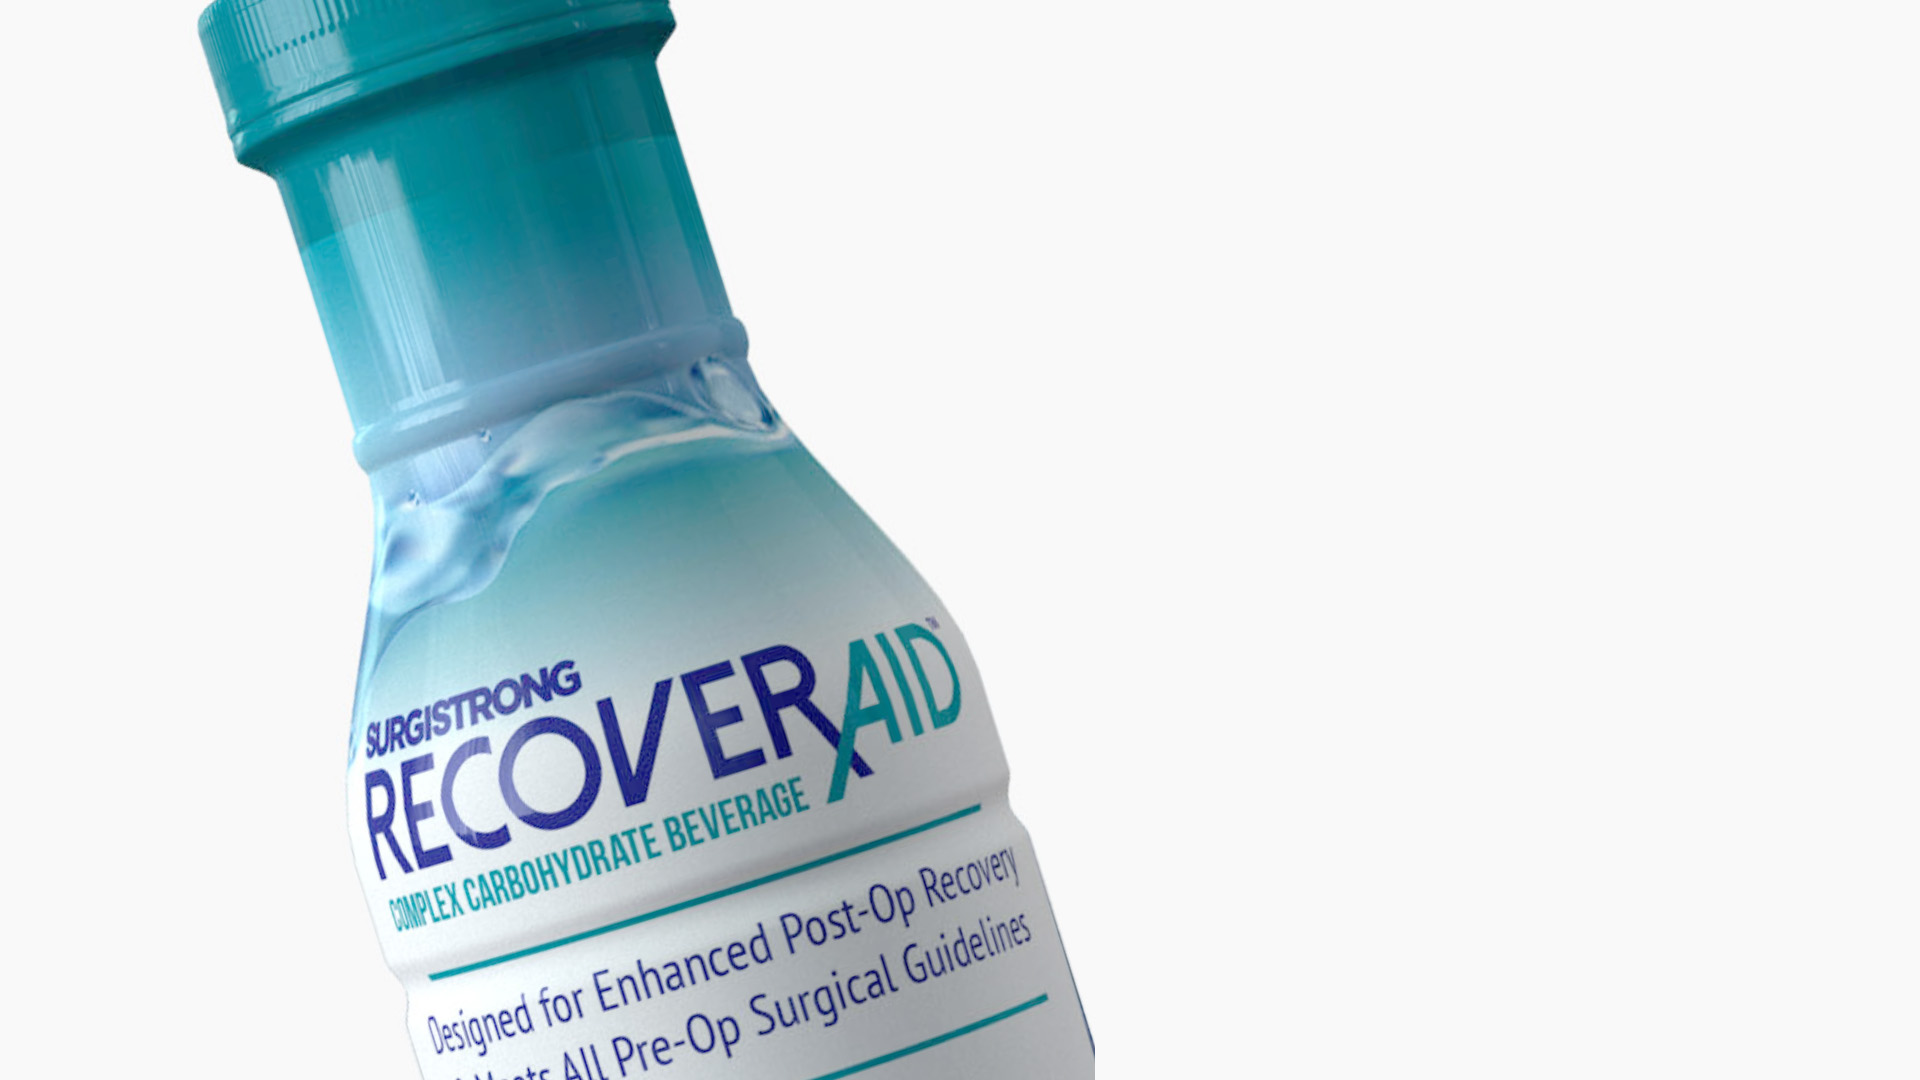 Recover Aid: Product Renders